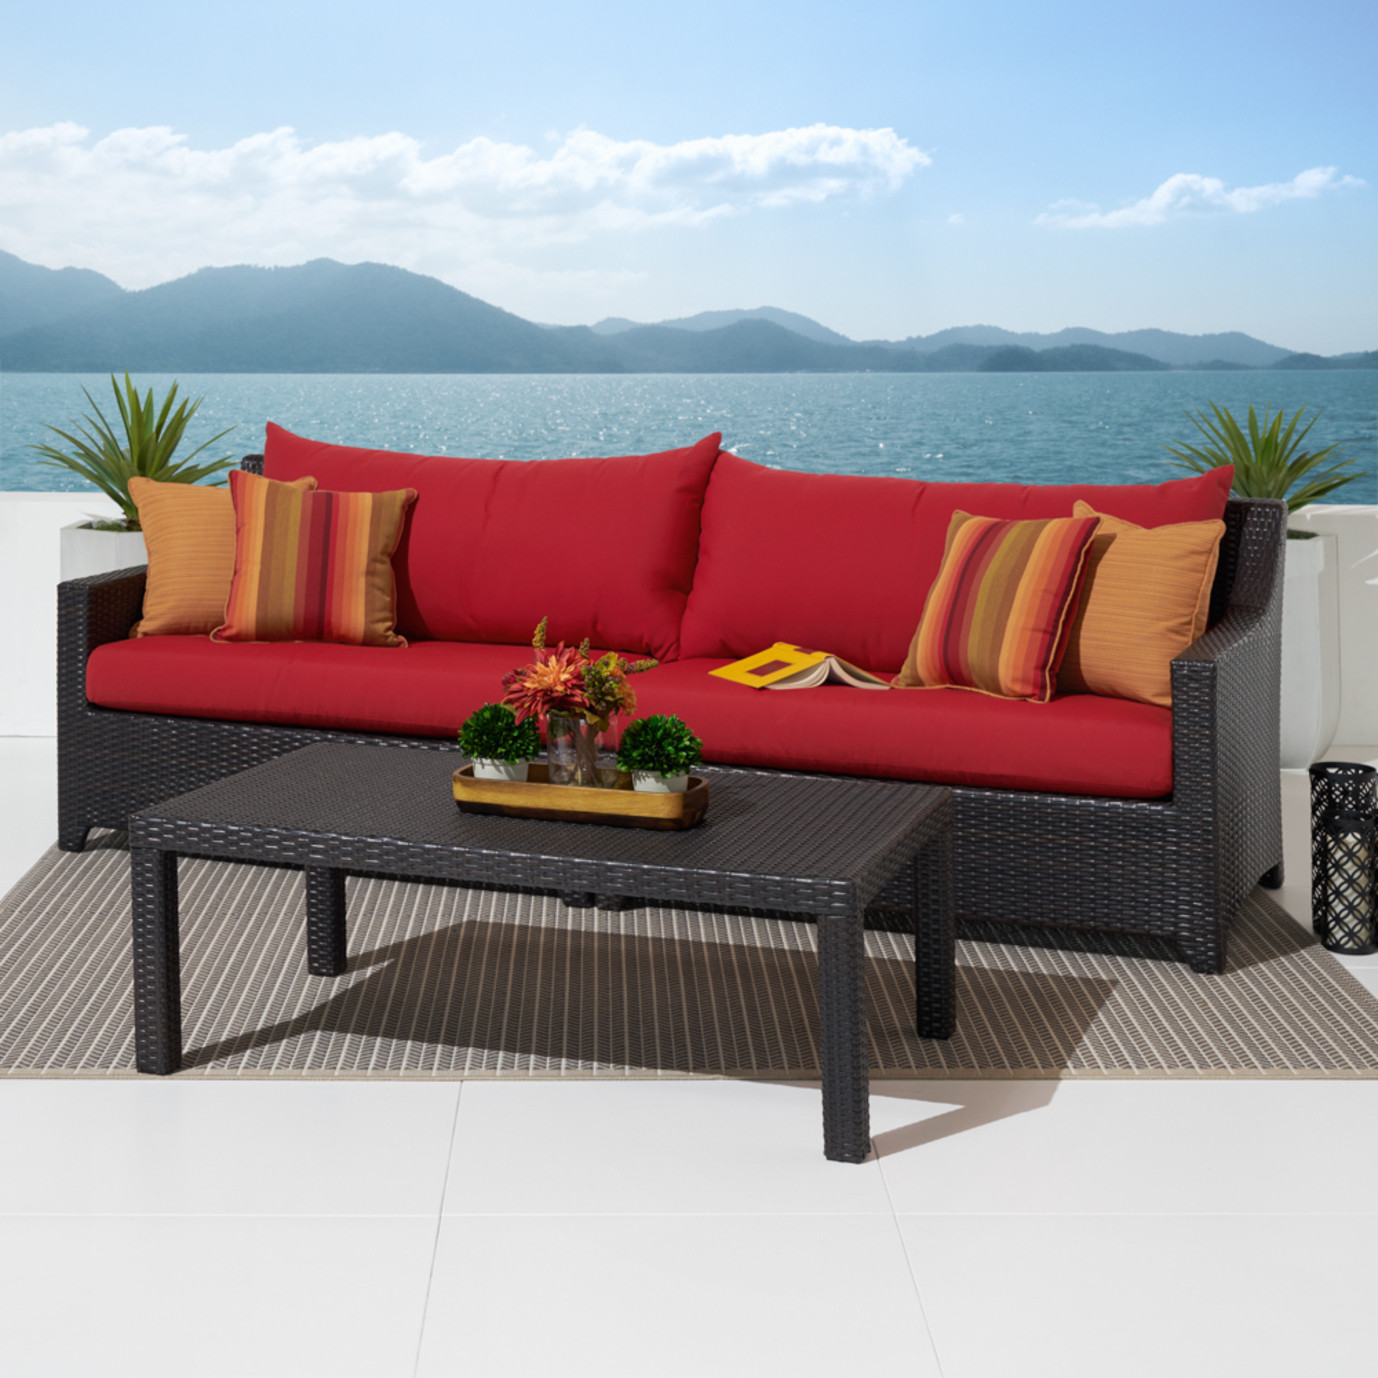 Deco™ Sofa & Coffee Table - Sunset Red